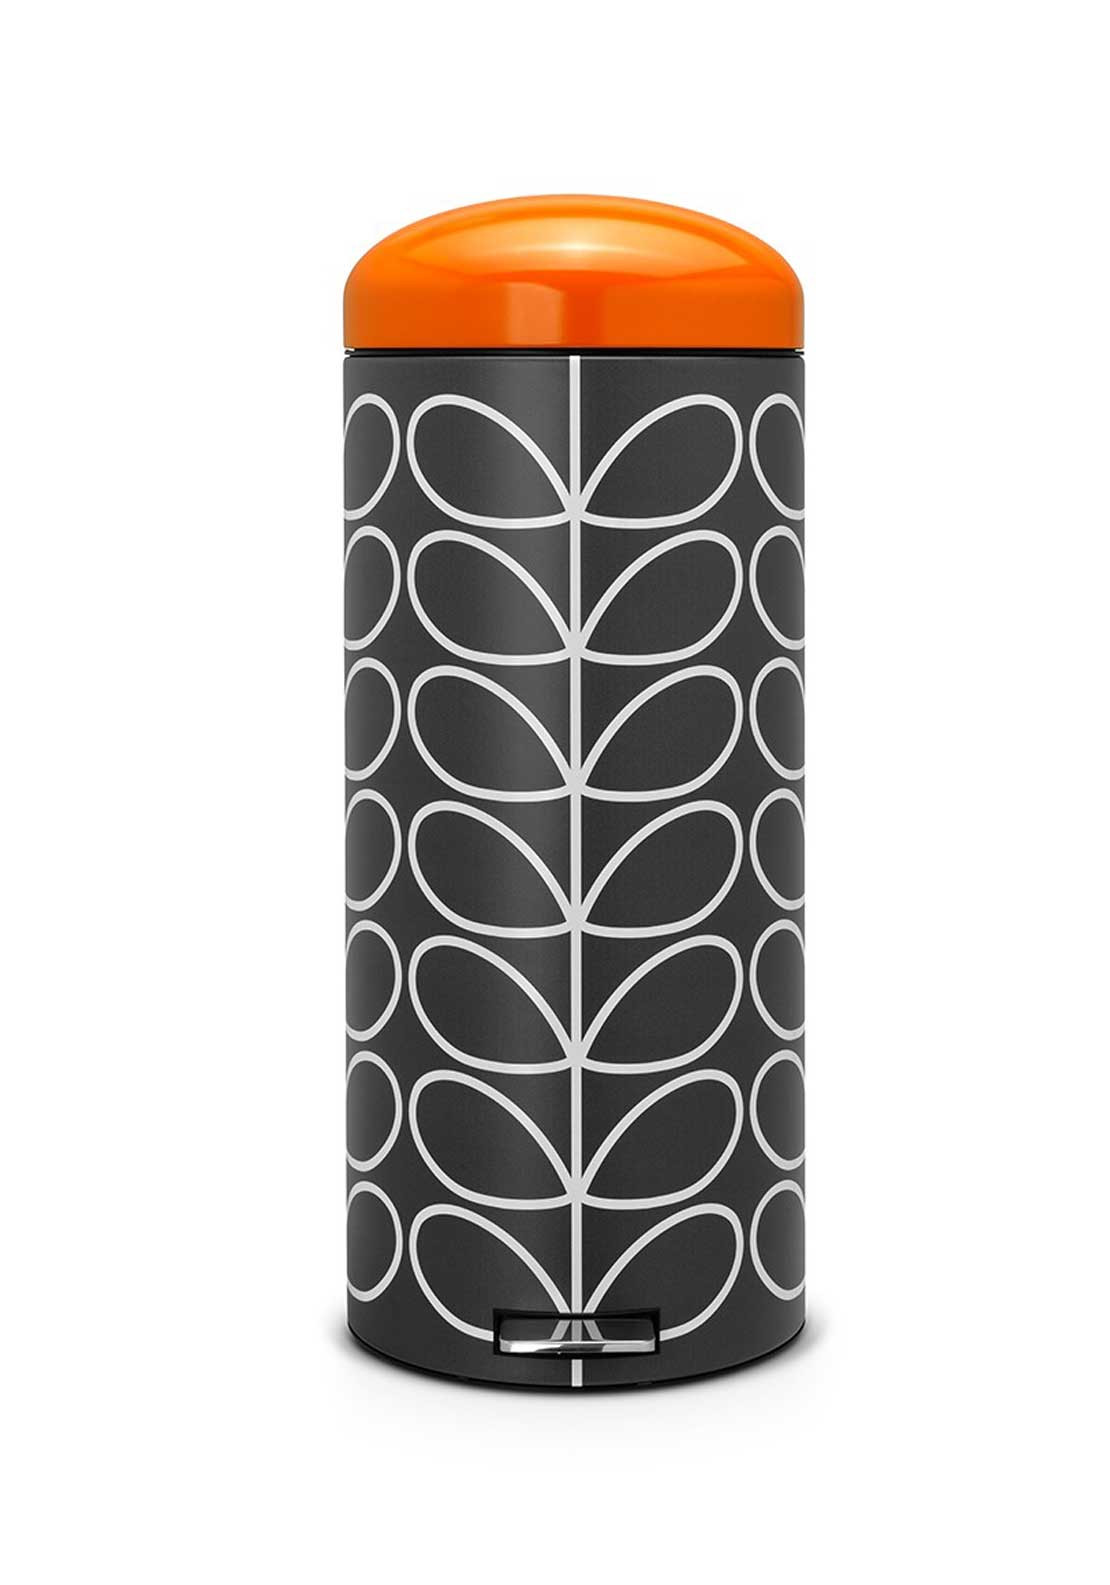 Orla Kiely Retro Silent Bin by Brabantia in Linear Stem Print, Charcoal, 30ltr